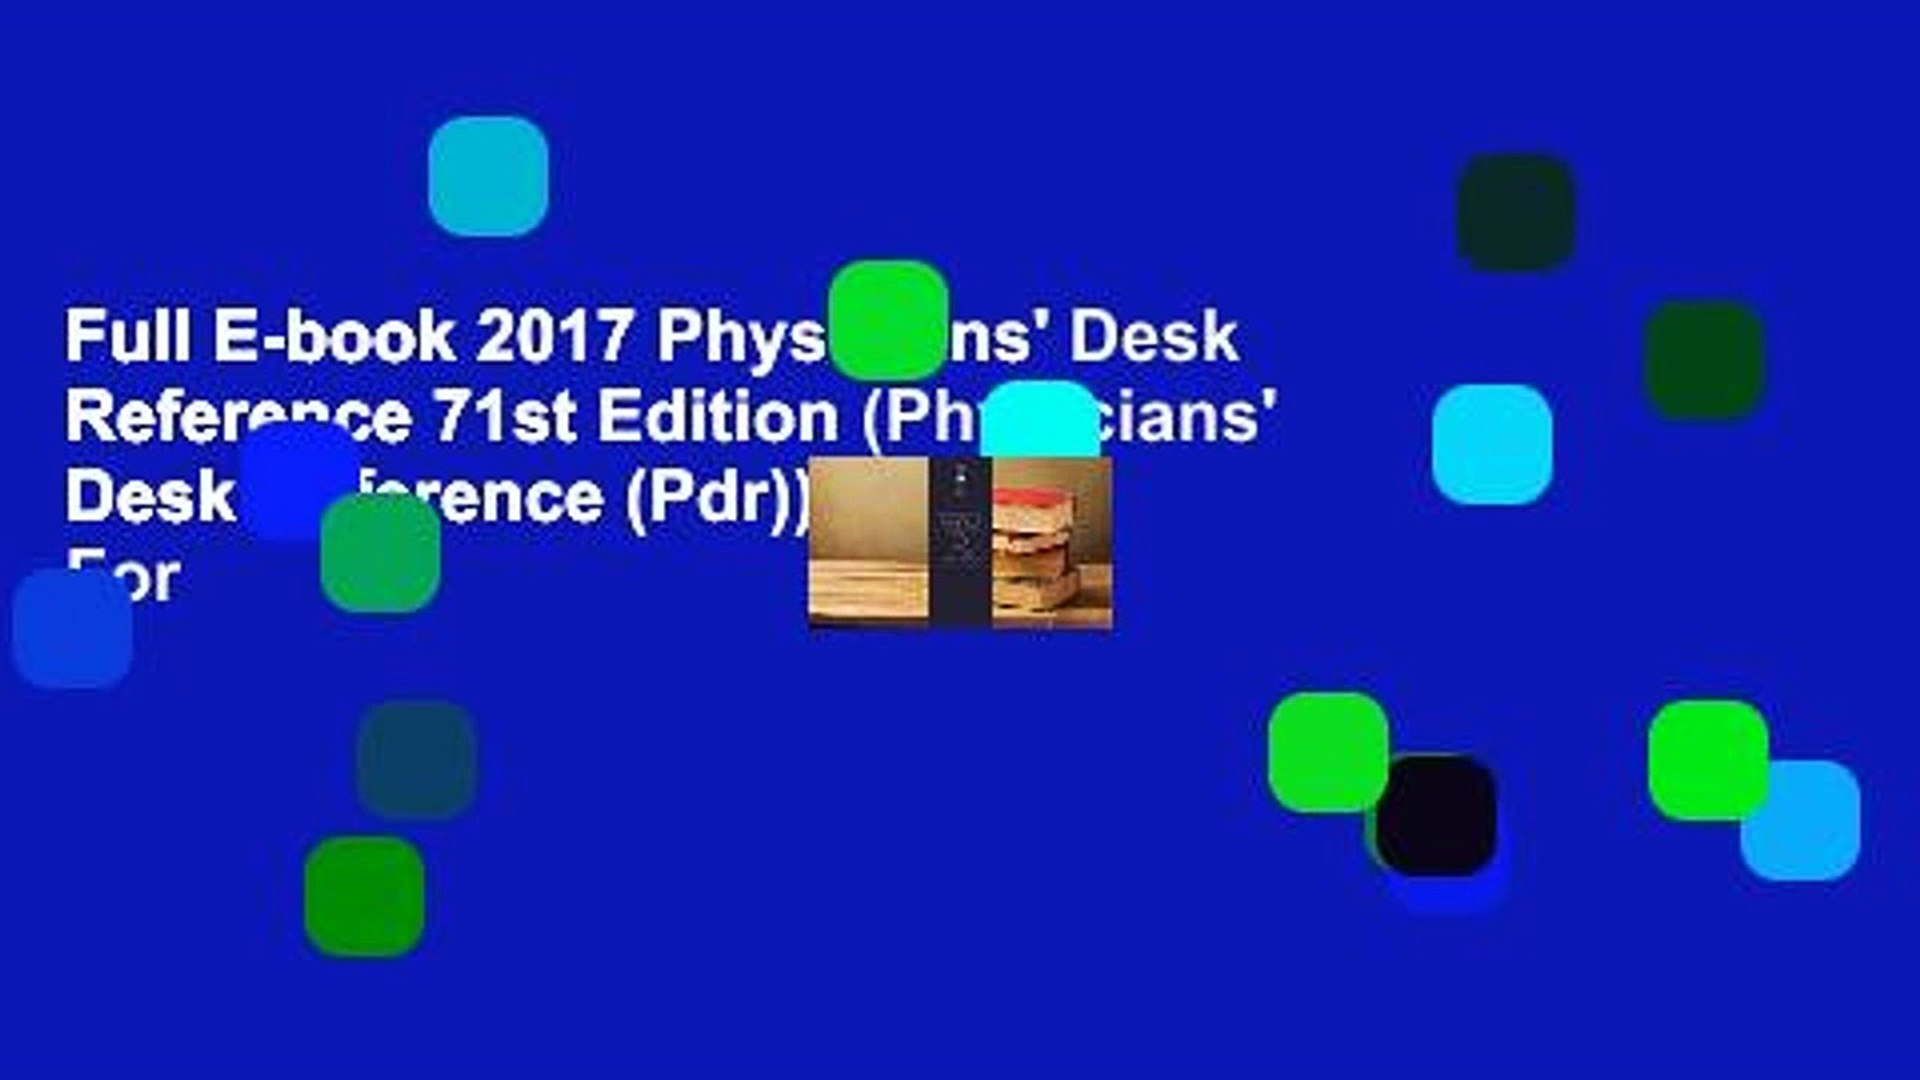 Groovy Full E Book 2017 Physicians Desk Reference 71St Edition Physicians Desk Reference Pdr For Download Free Architecture Designs Embacsunscenecom